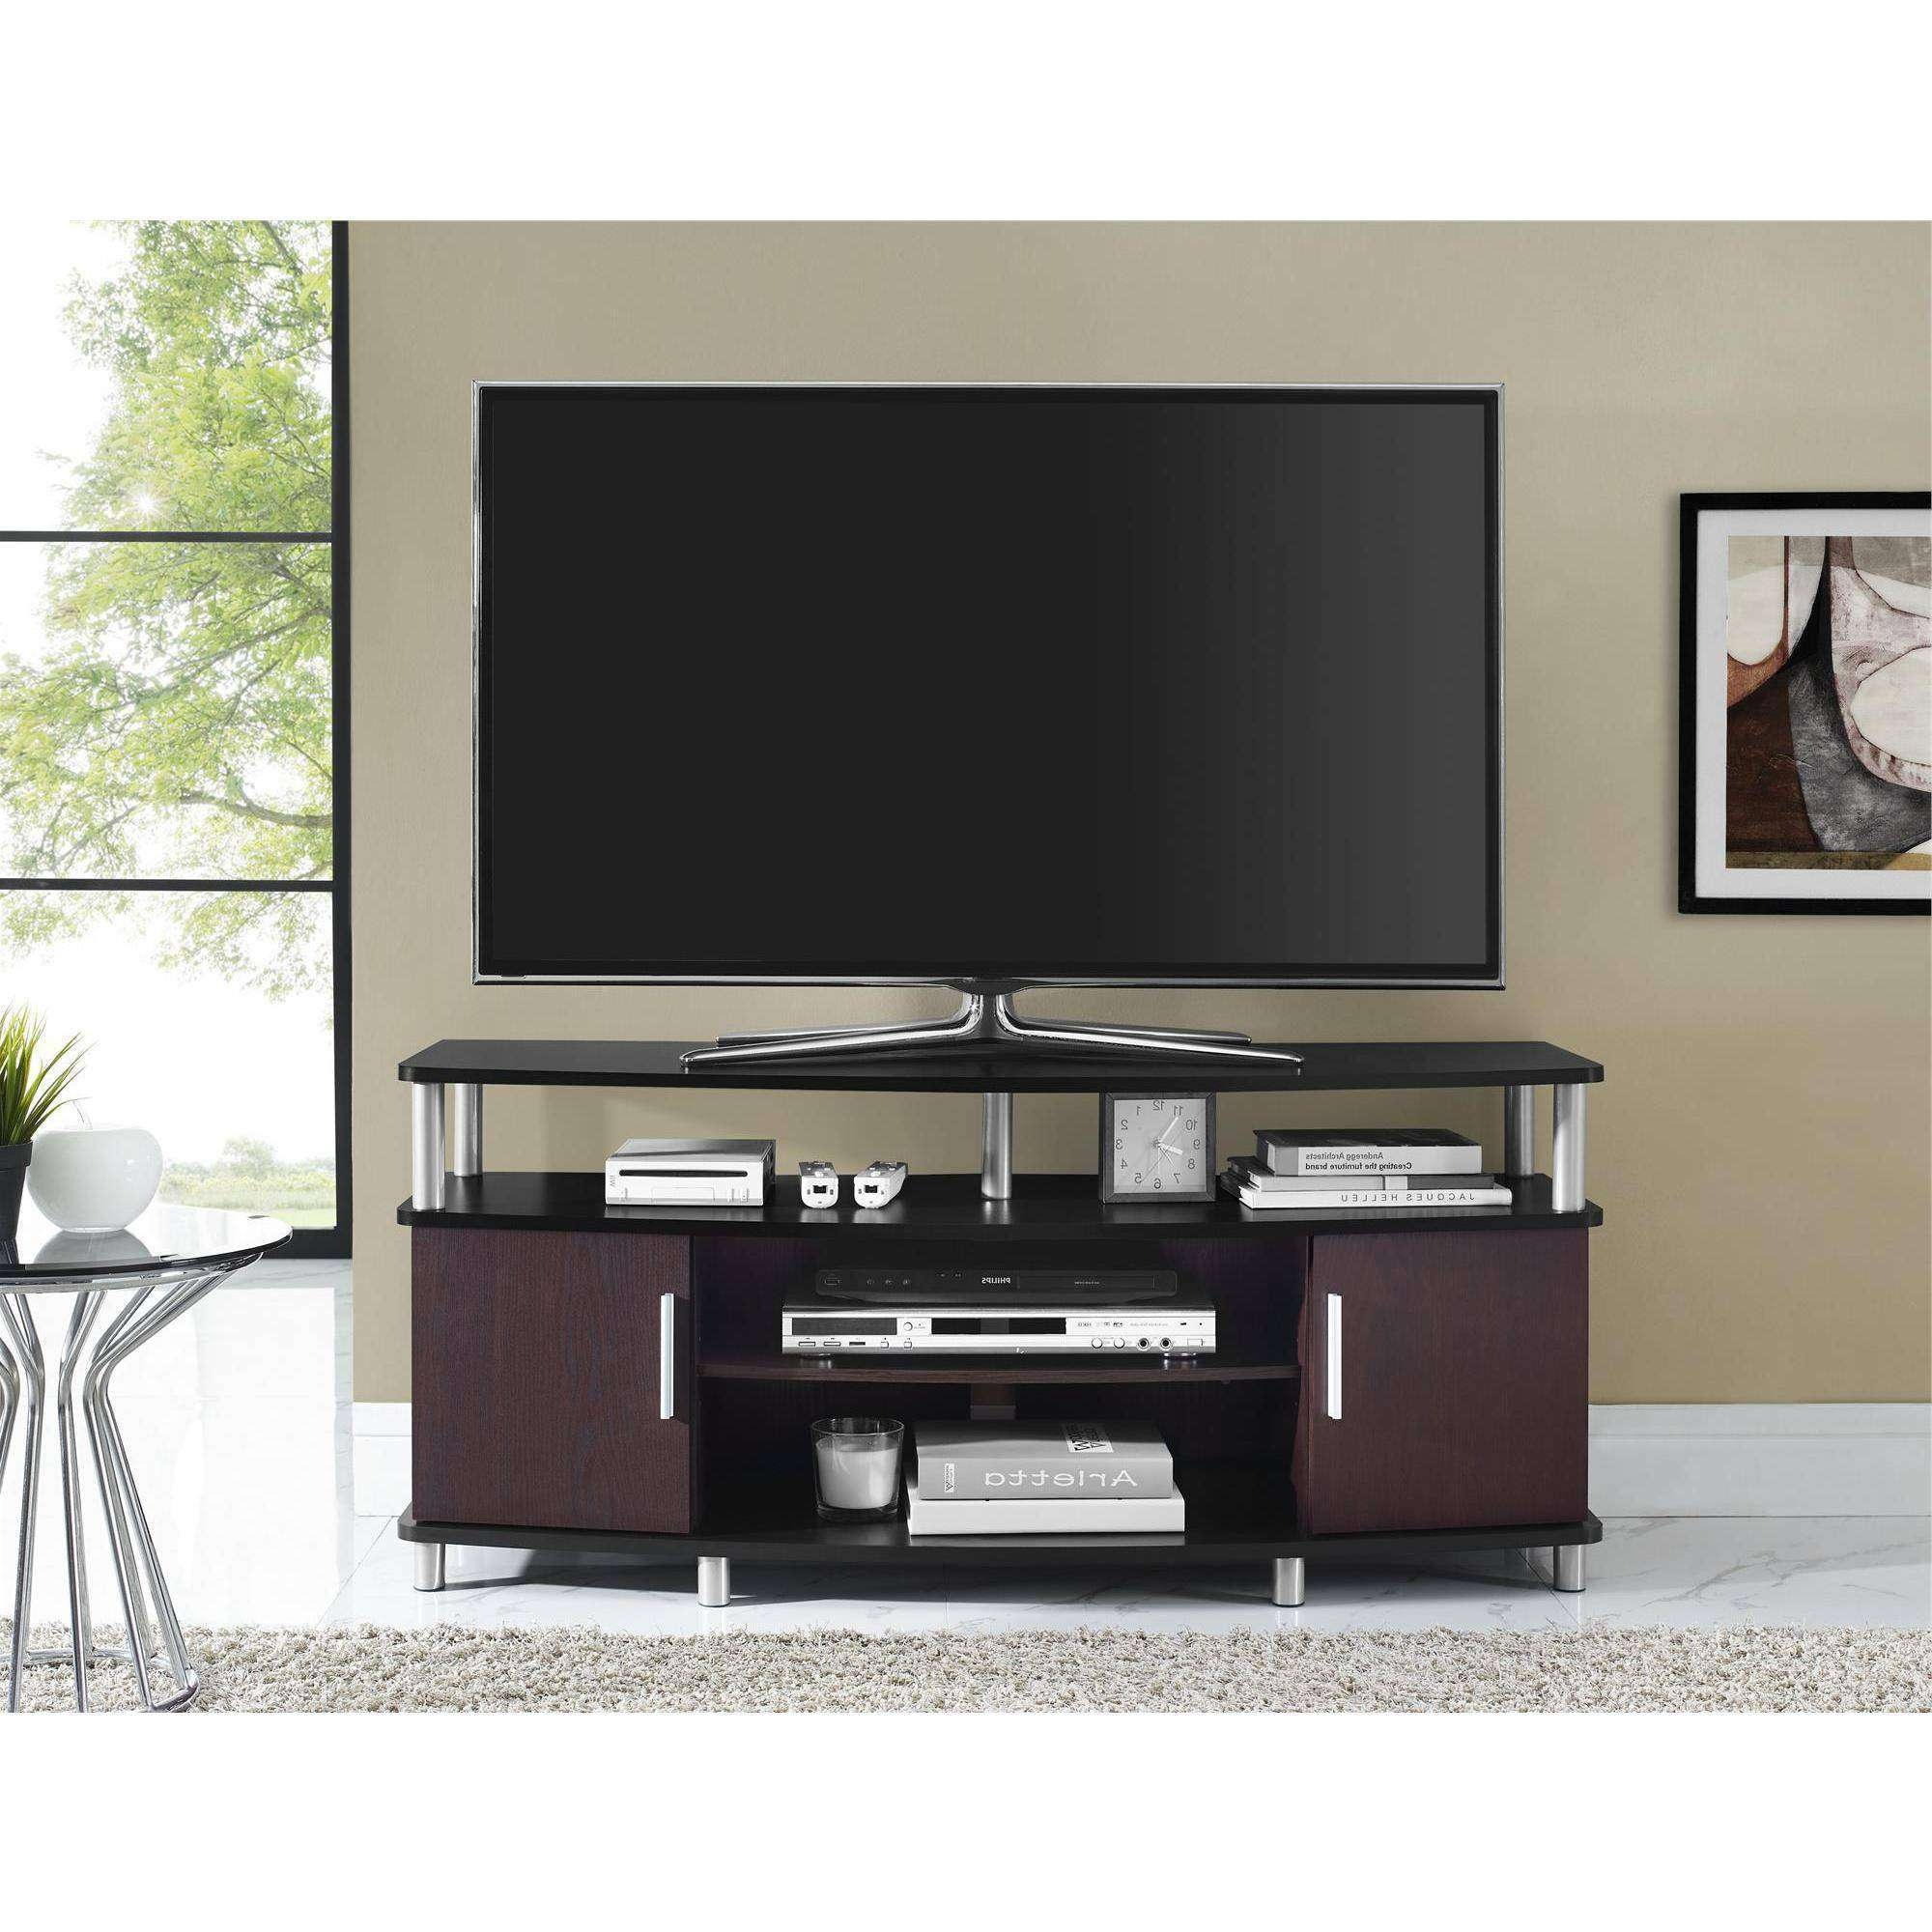 Fancy Carson Tv Stand For Tvs Up To 50 Multiple Finishes 34 In Within Fancy Tv Stands (View 12 of 15)